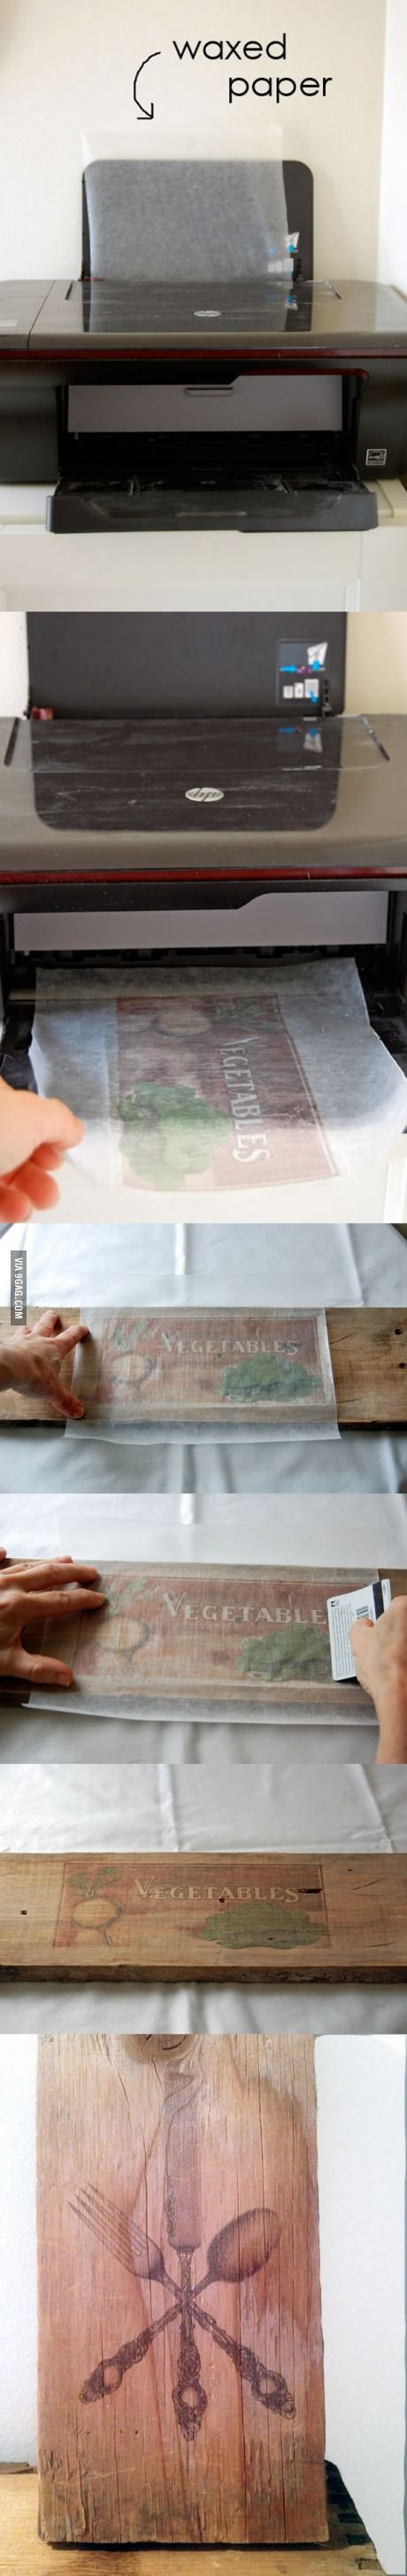 Wood transfer project ideas and diy and crafts on pinterest for Transfer picture to wood inkjet